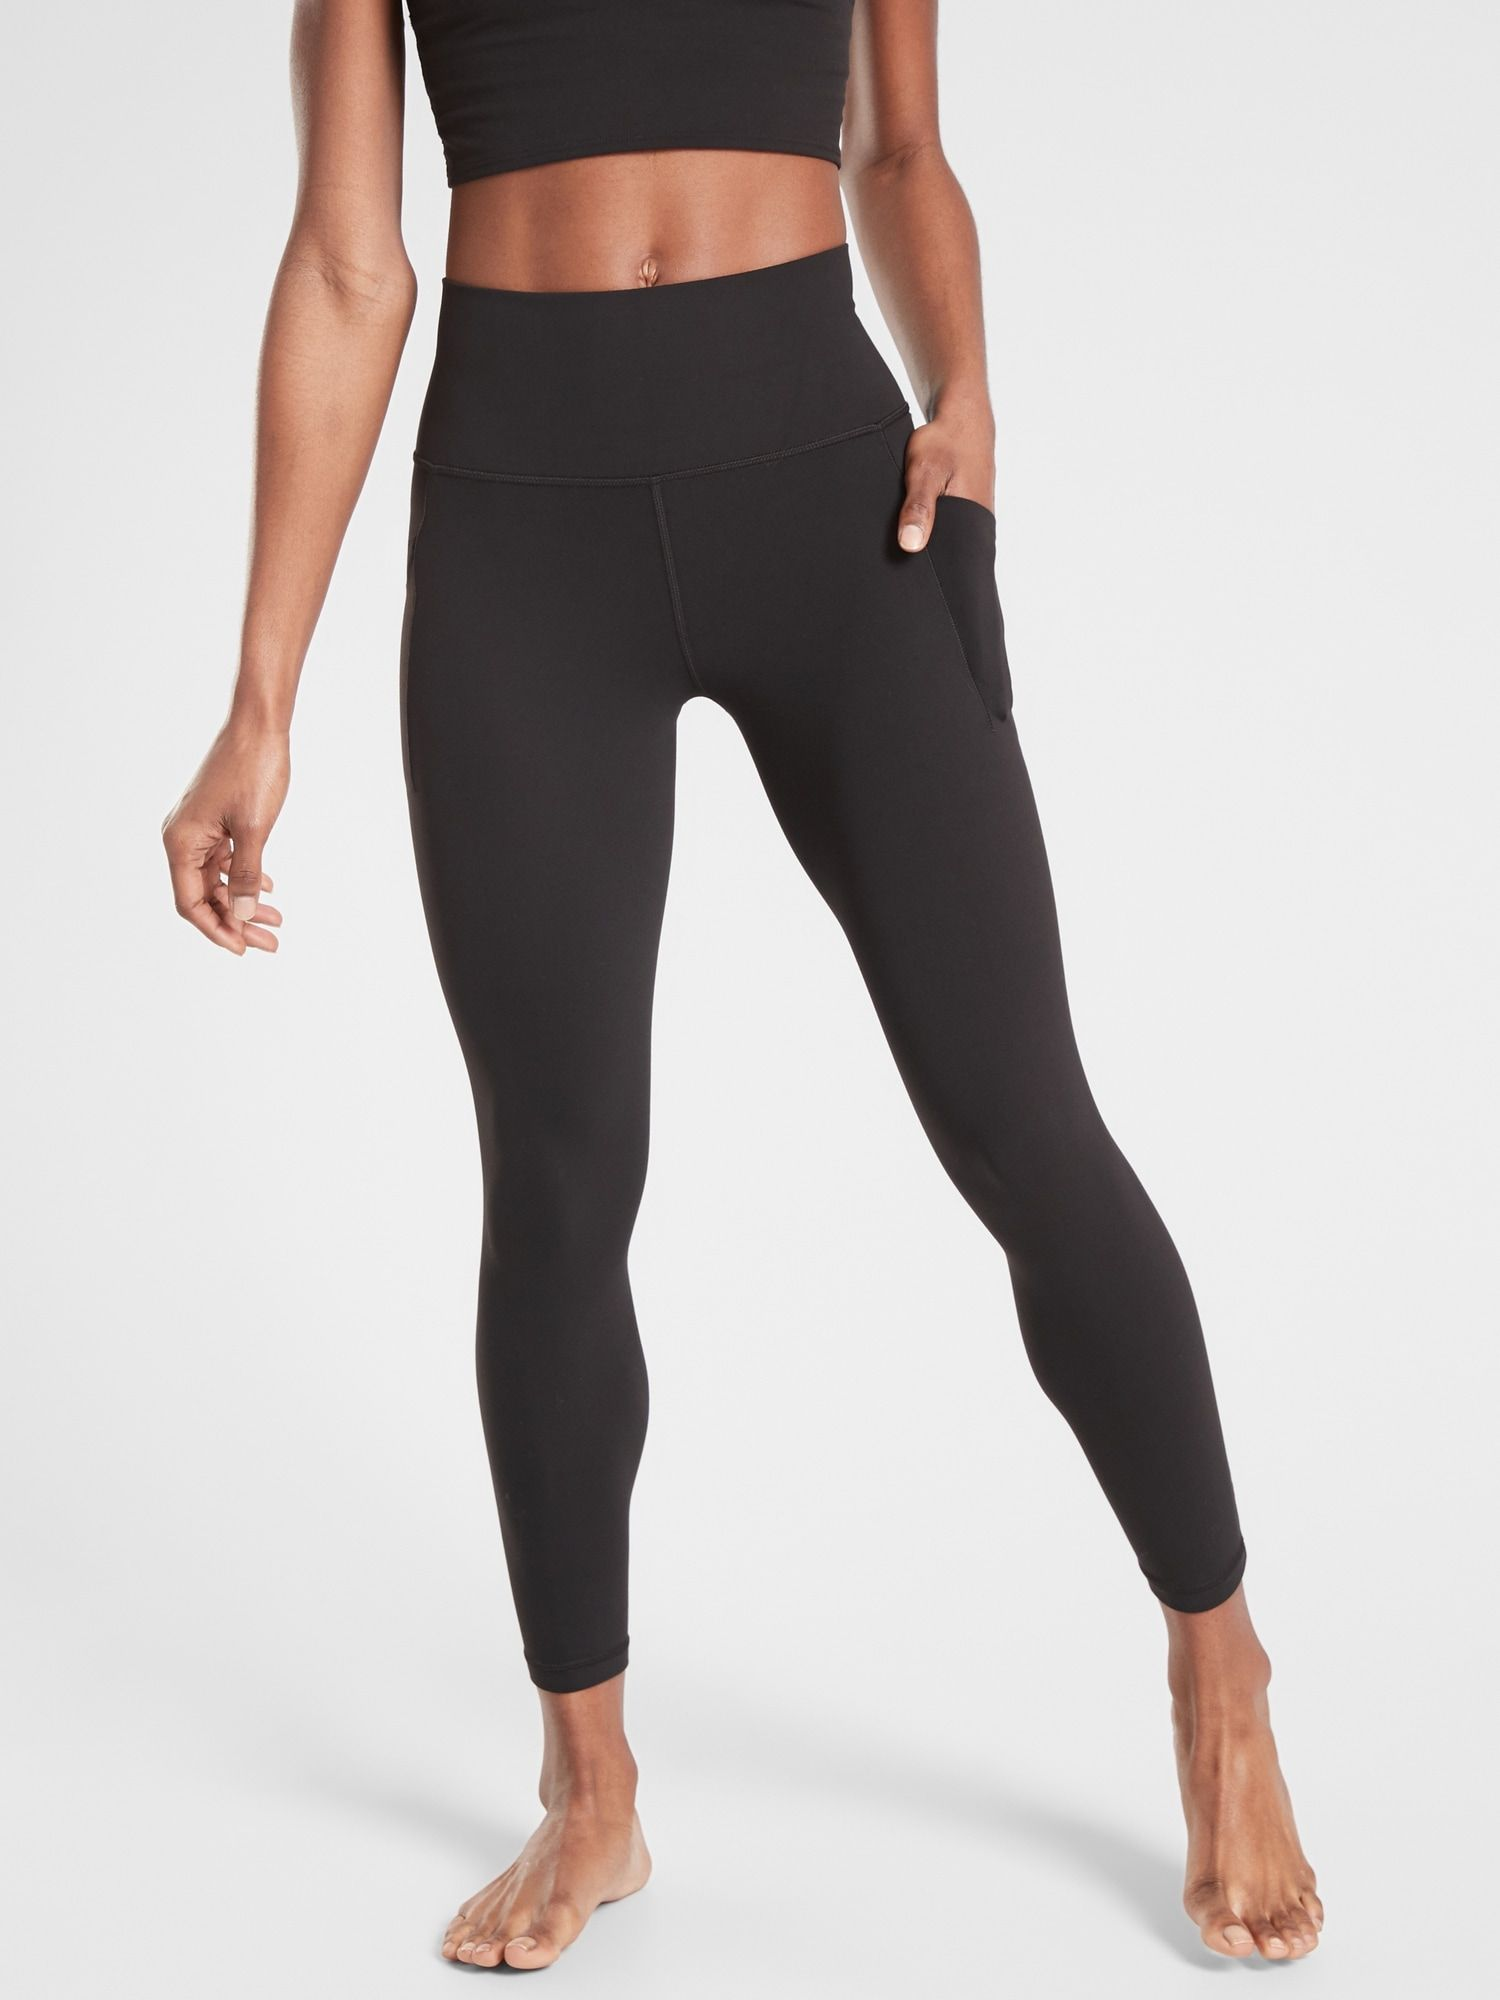 12 Best Black Leggings Of 2020 Black Leggings For Every Activity